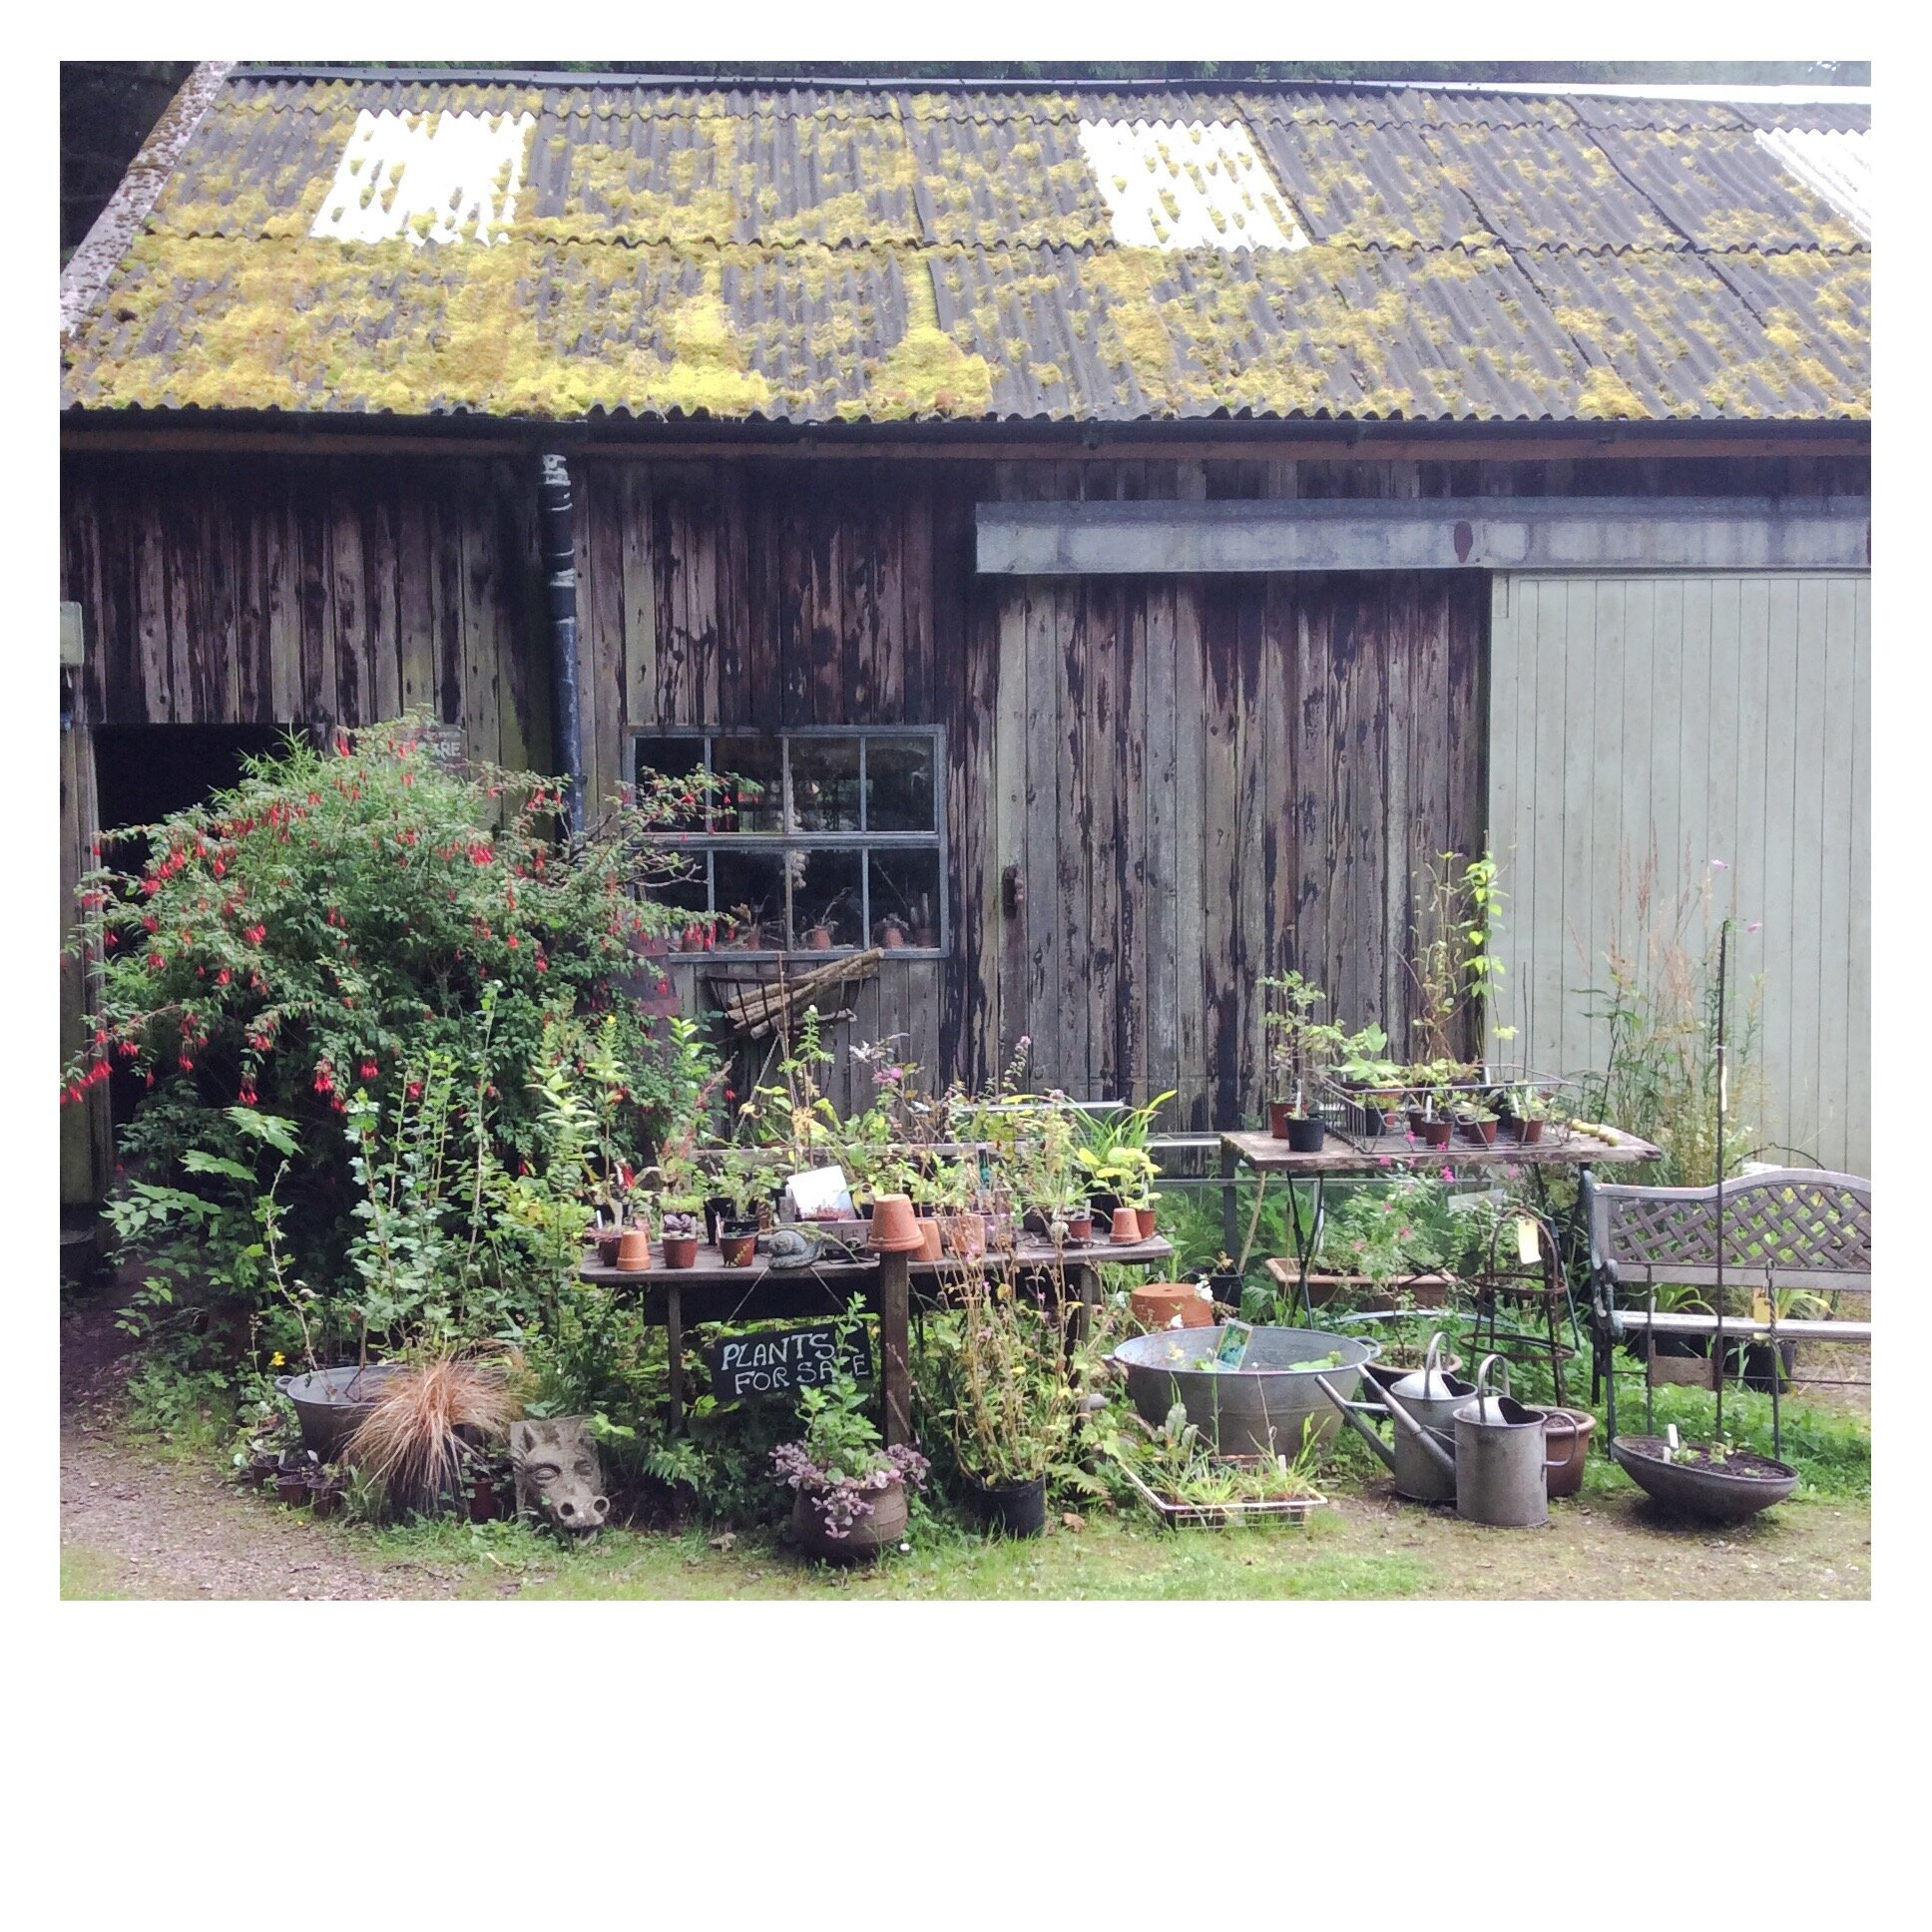 The Potting Shed, Nant y Bedd. August 2019.